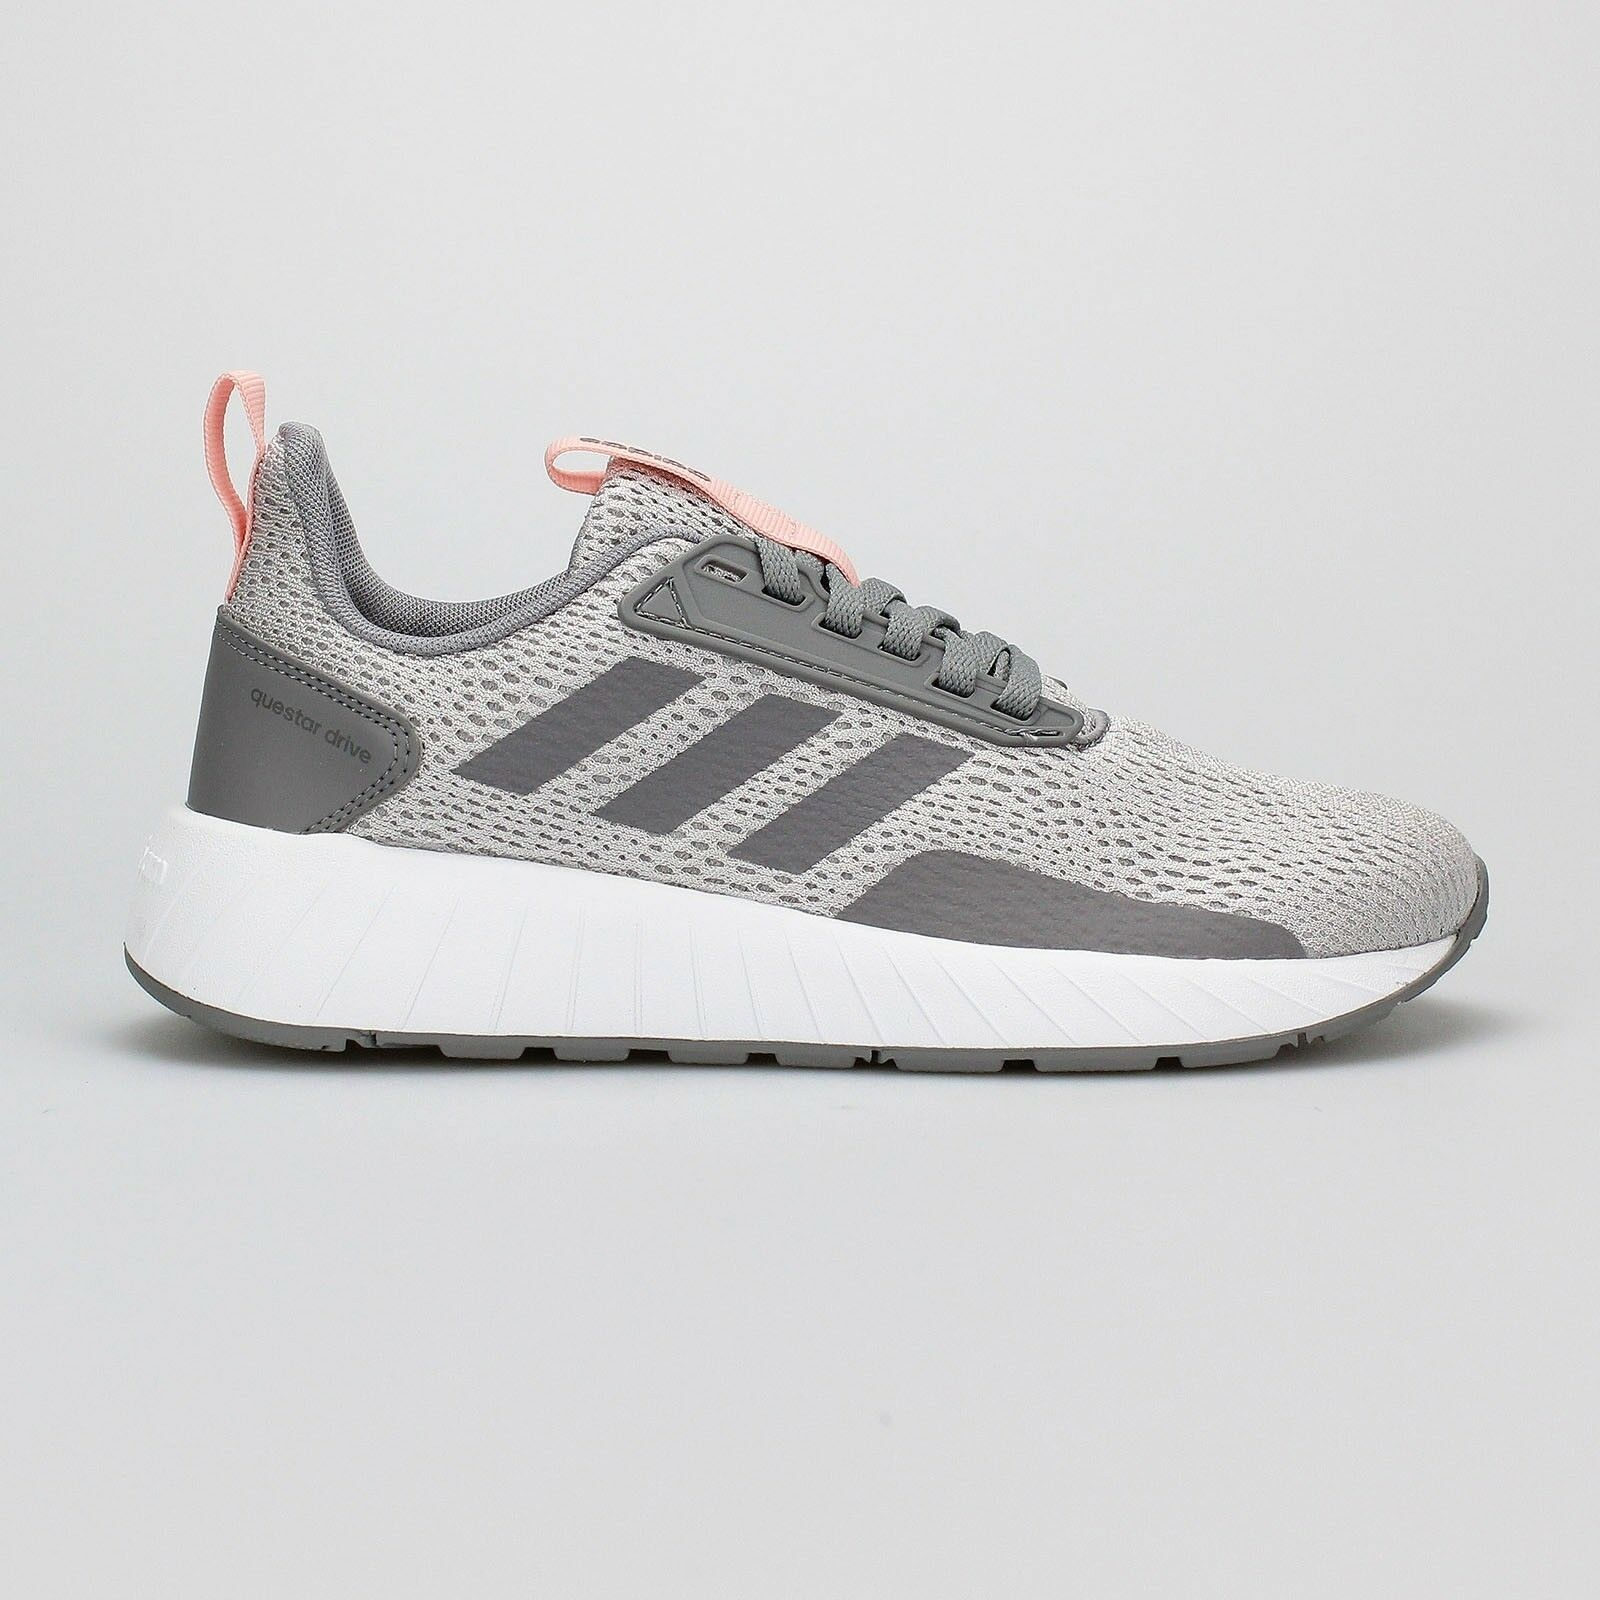 newest 21134 54219 ... Women Adidas Questar Questar Questar Drive Running Shoes Grey Pink  Sneakers DB1693 NEW e5a1fc ...